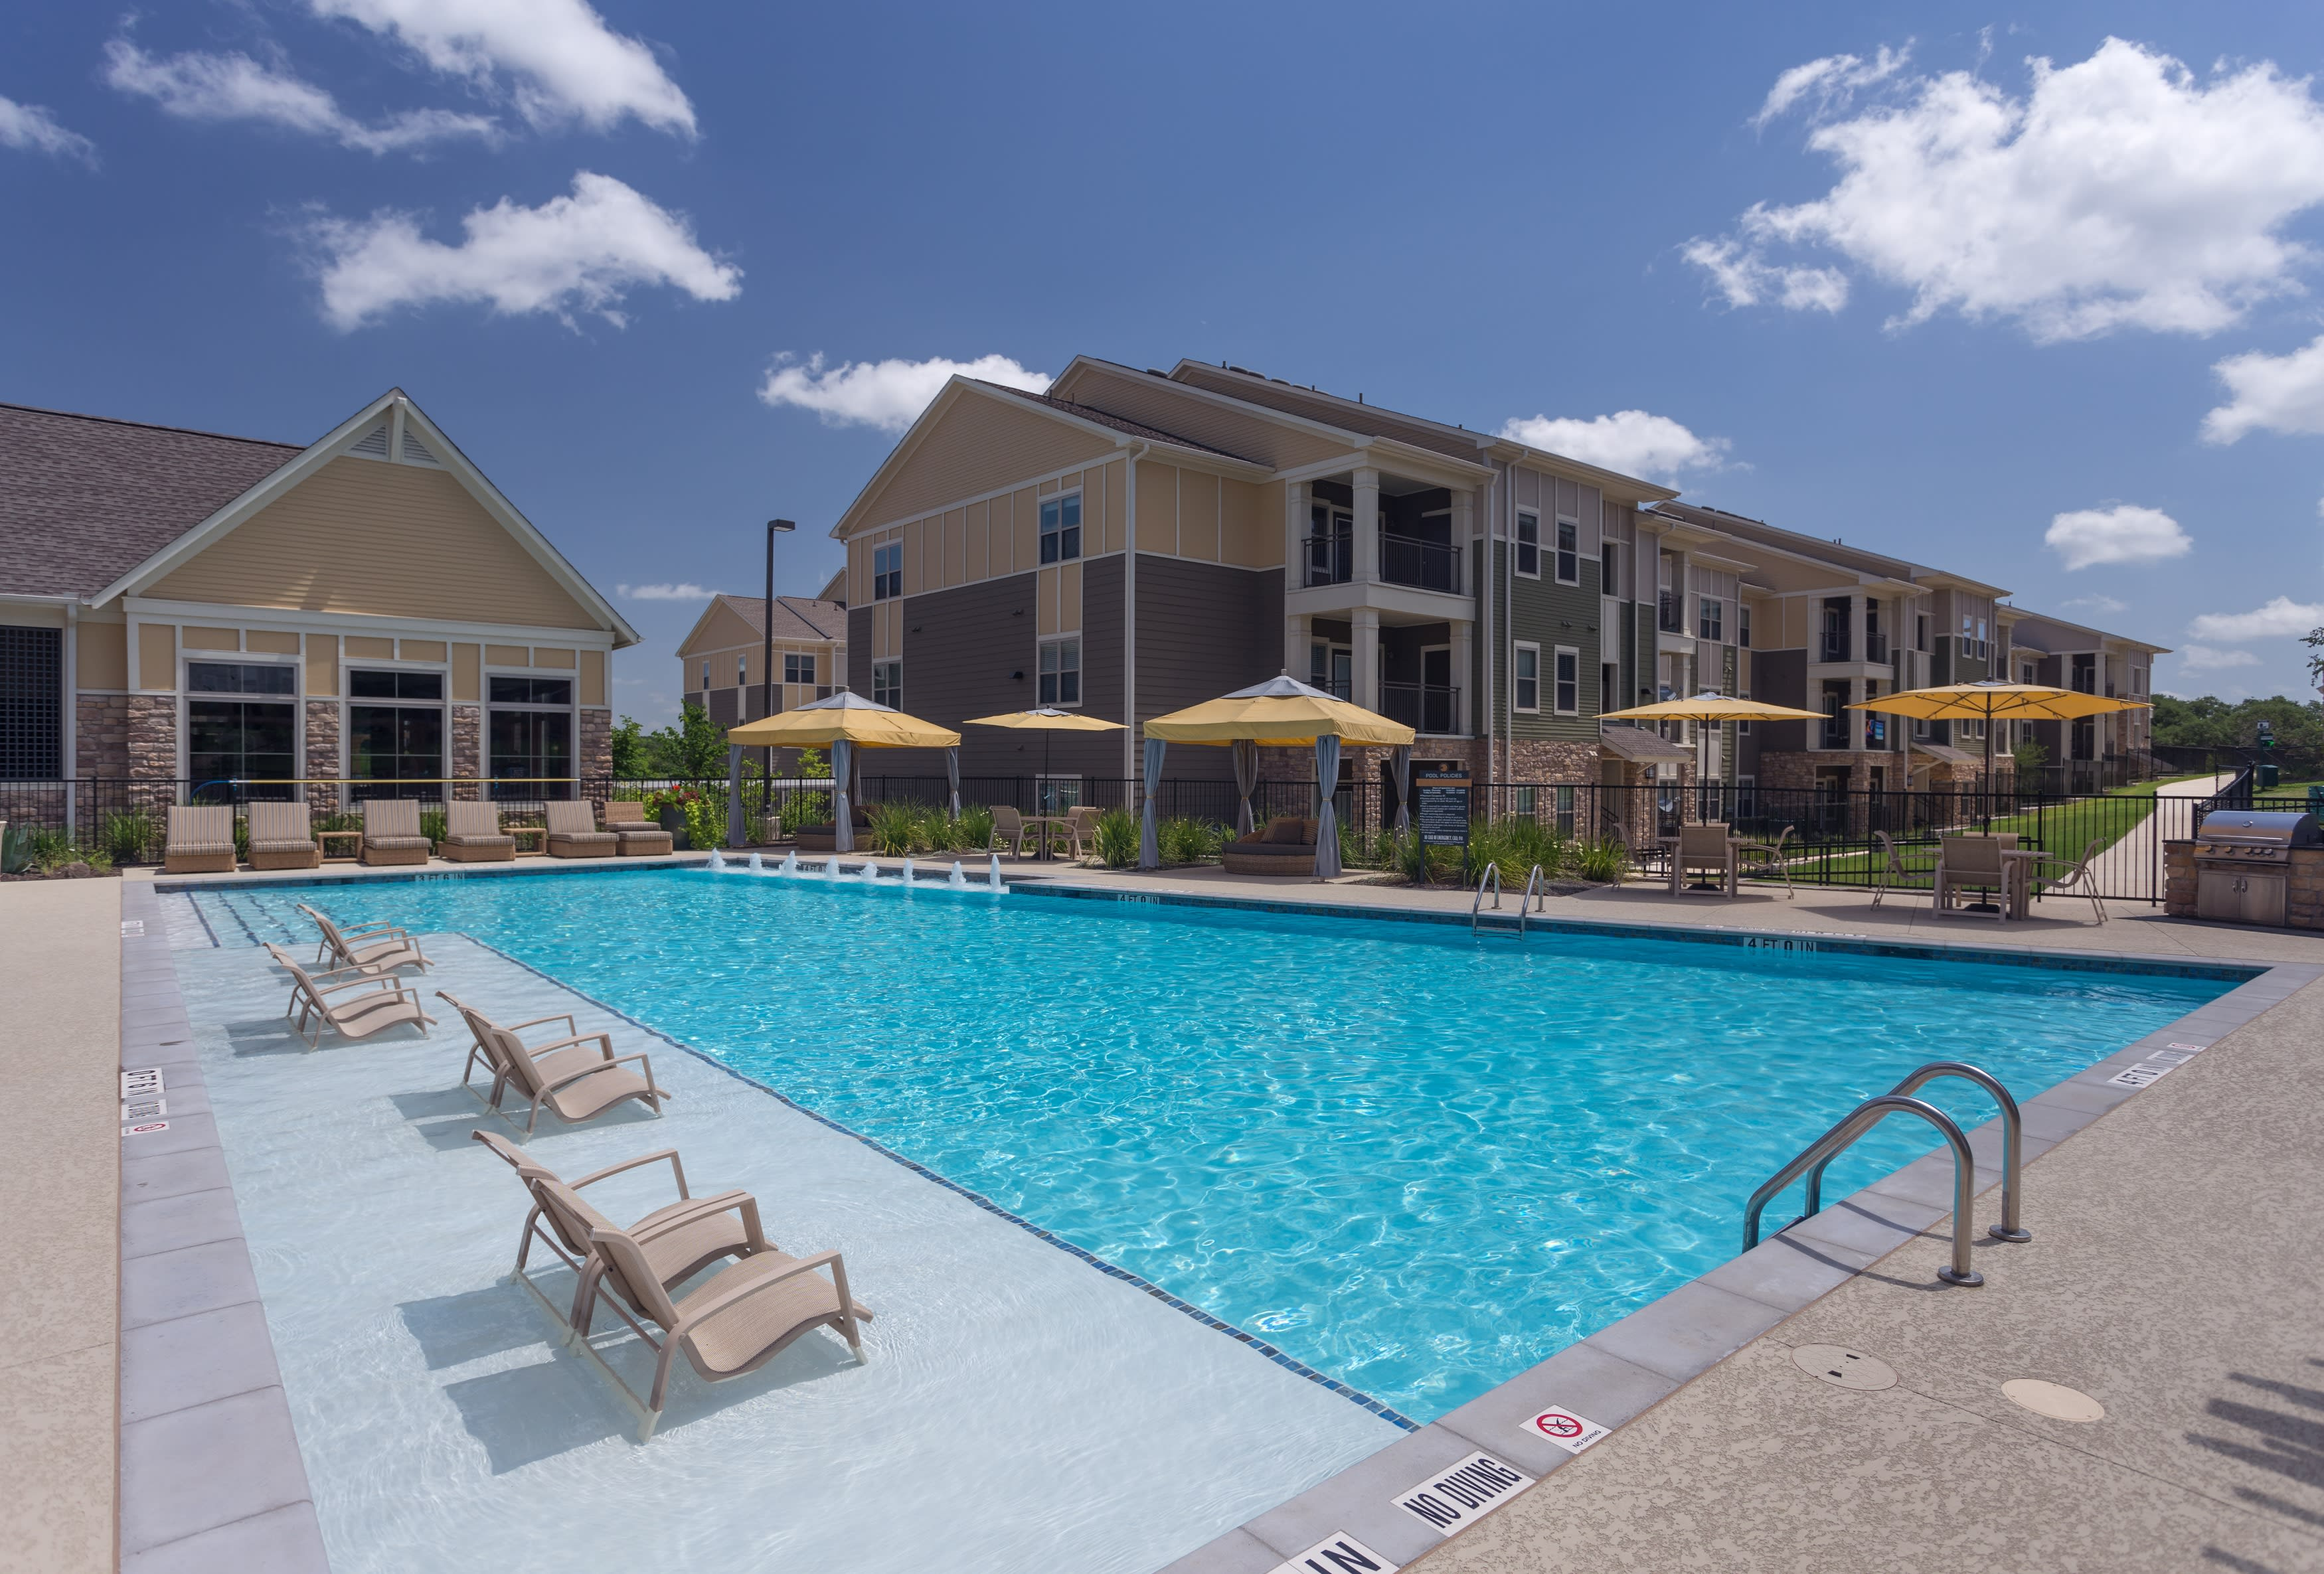 Sparkling blue pool with lounge chairs at Encore 281 in San Antonio, Texas